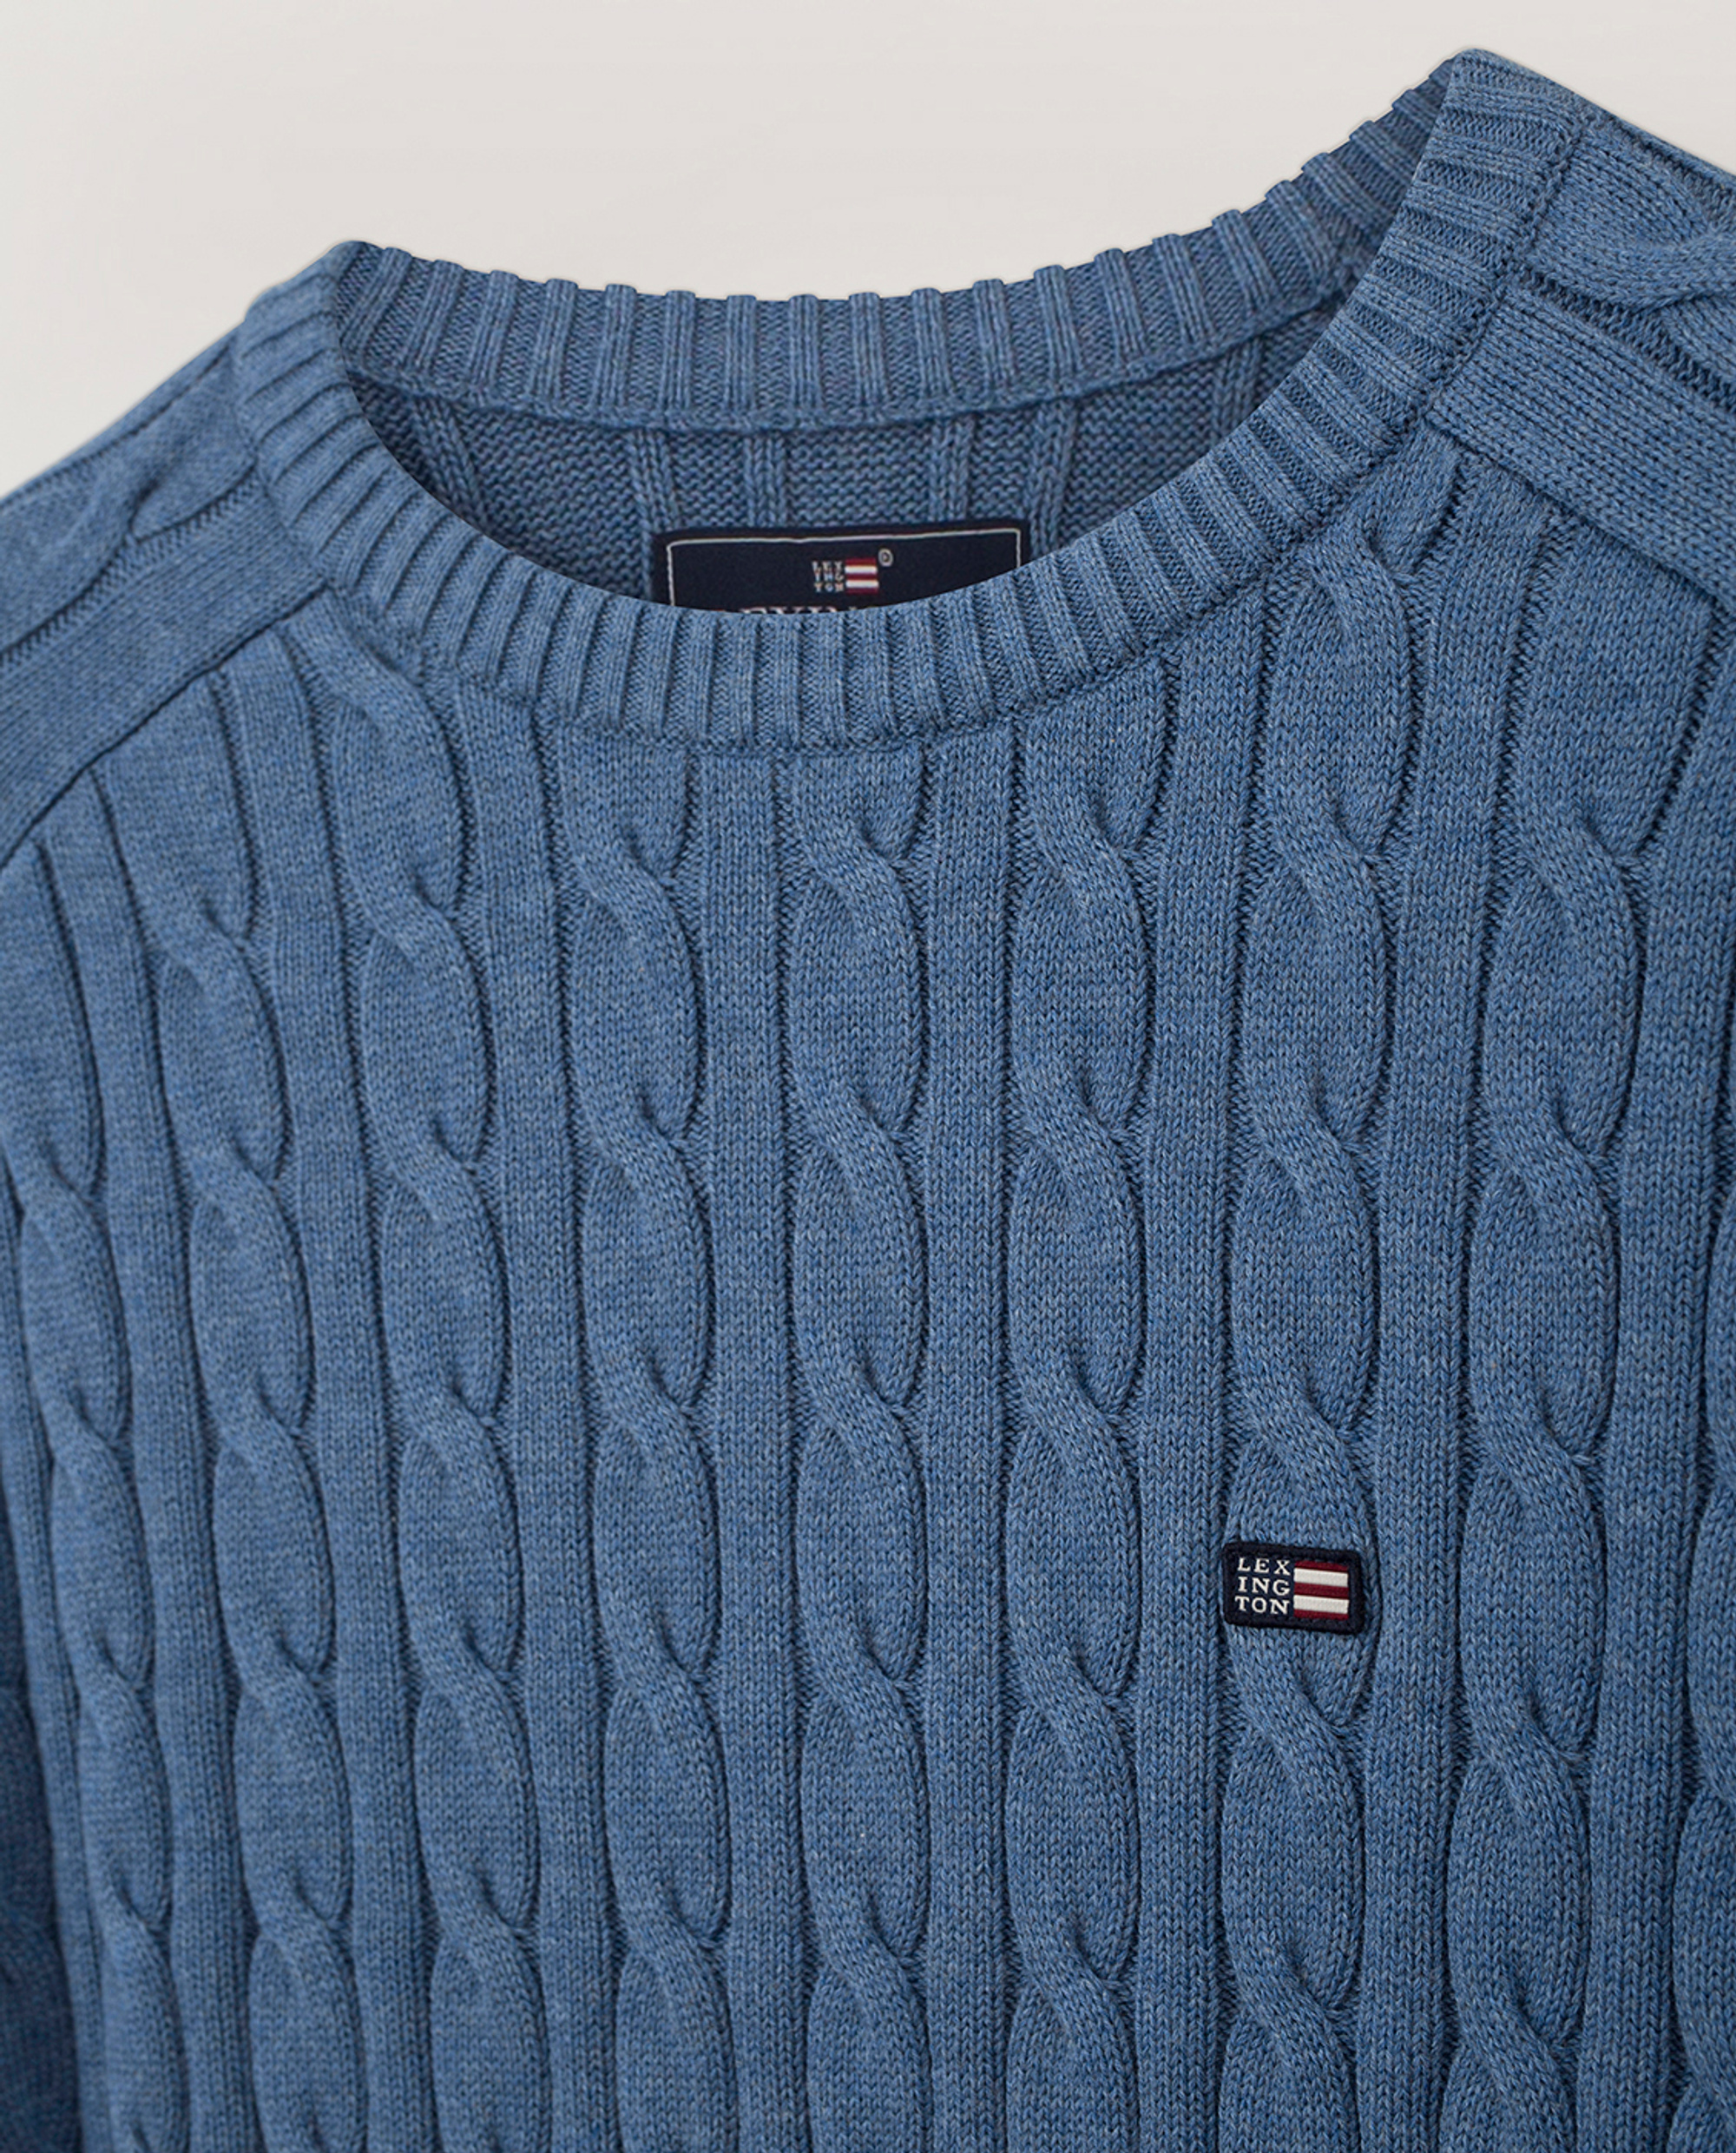 Andrew Cable Sweater, Blue Melange